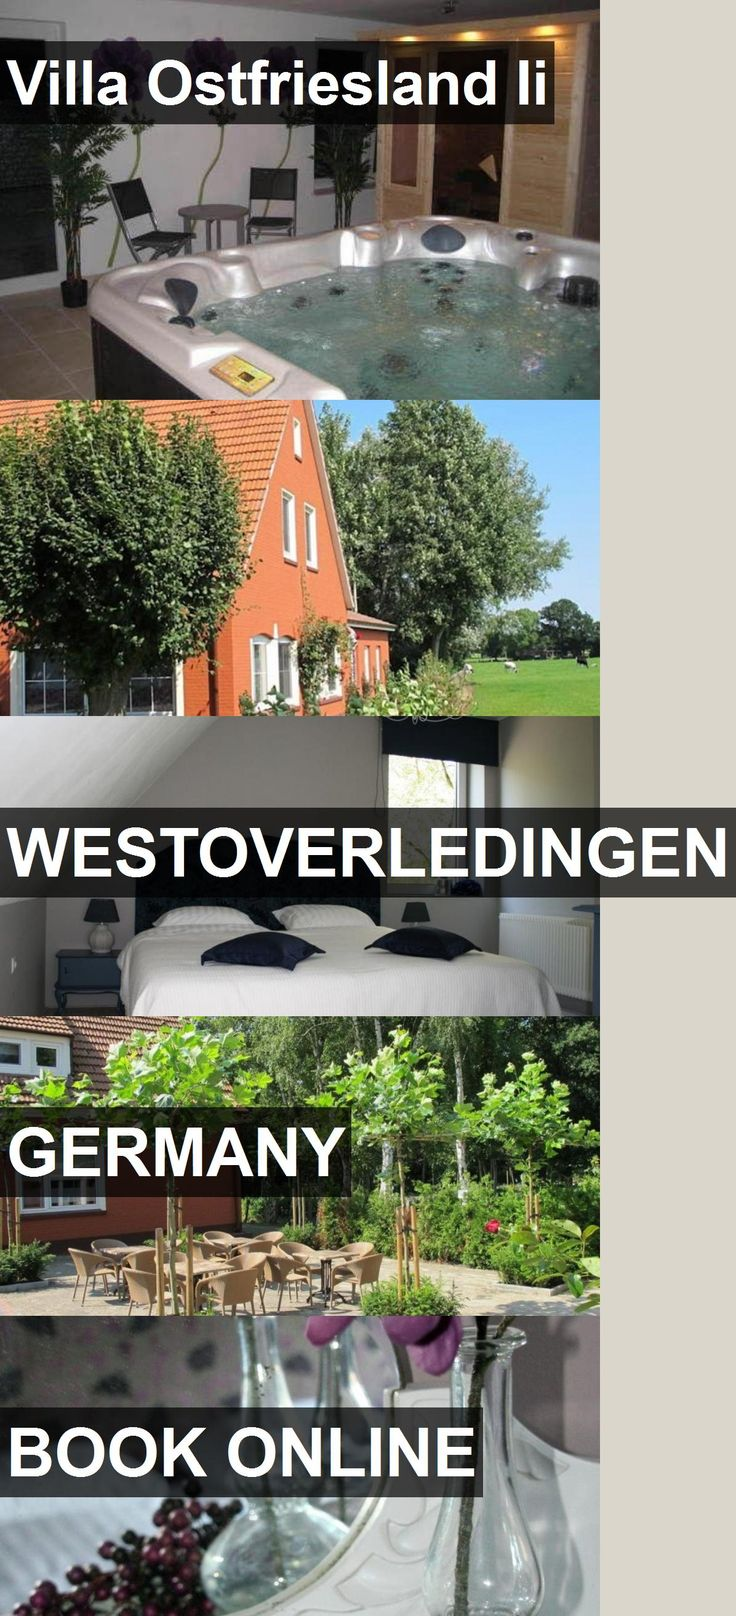 Hotel Villa Ostfriesland Ii in Westoverledingen, Germany. For more information, photos, reviews and best prices please follow the link. #Germany #Westoverledingen #VillaOstfrieslandIi #hotel #travel #vacation